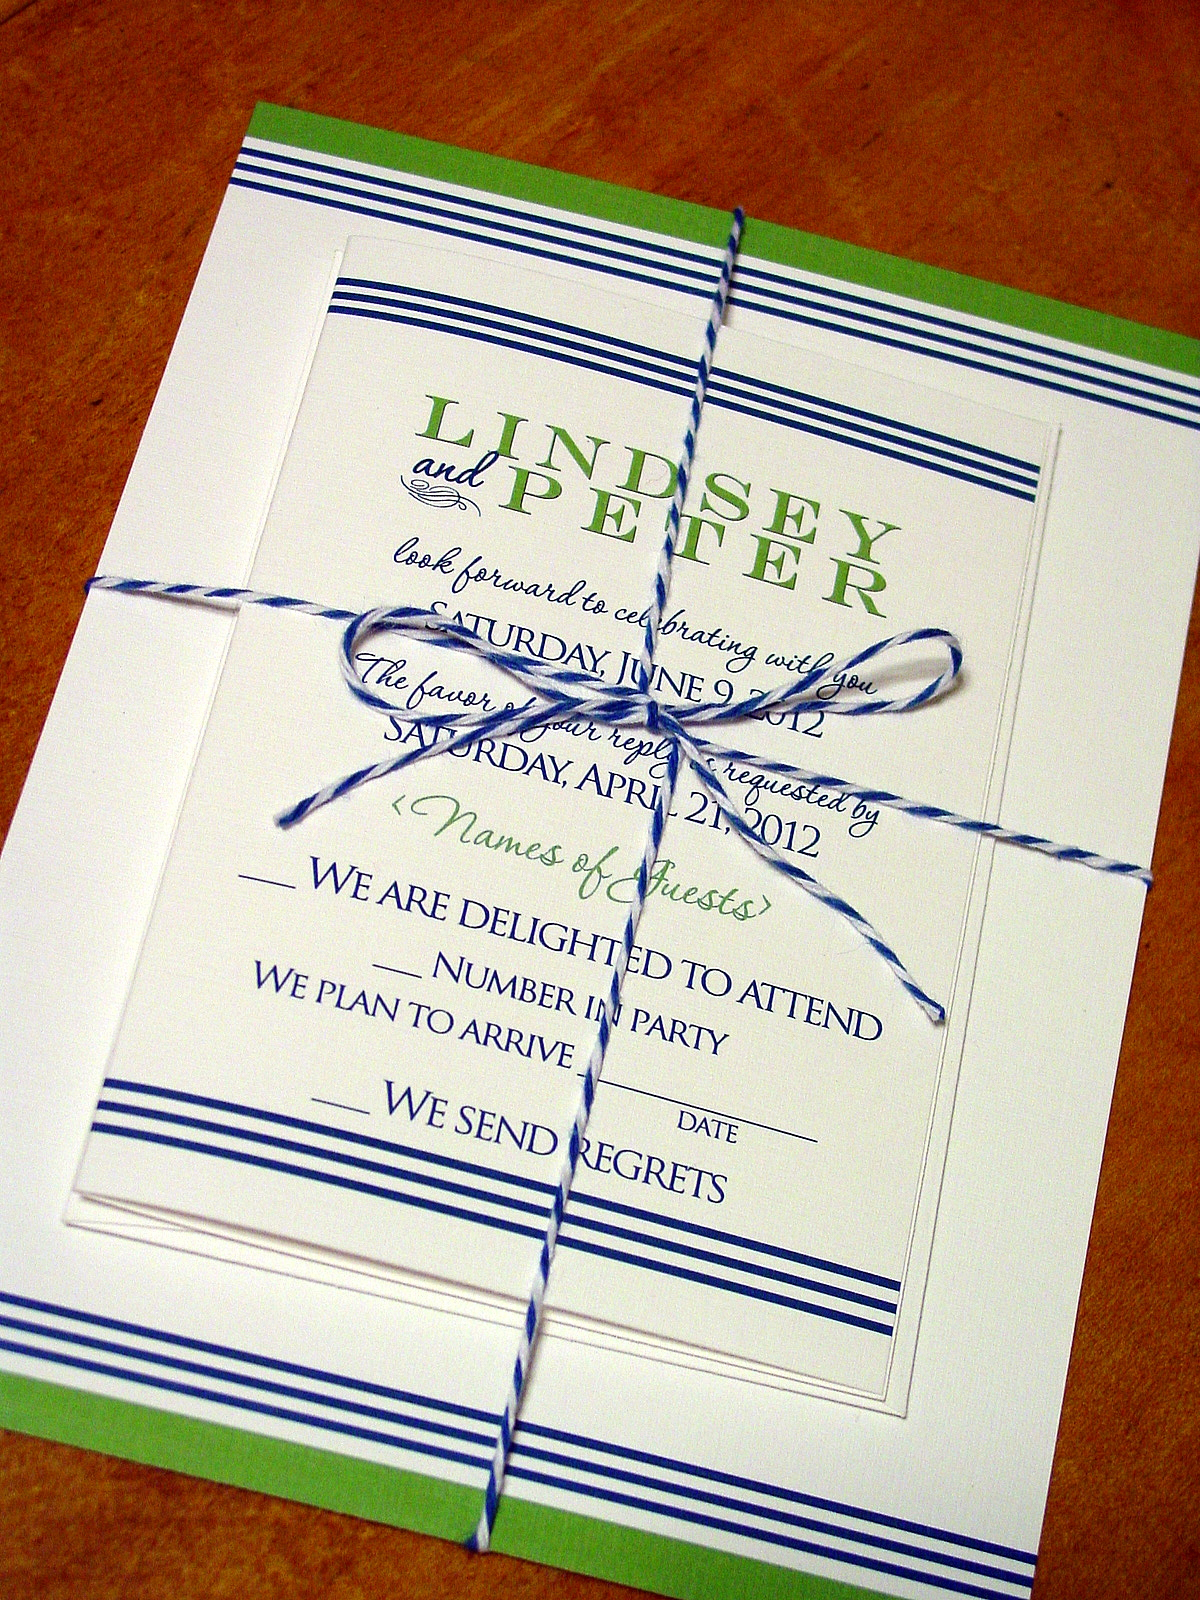 Lindsey and Peter - Invitations